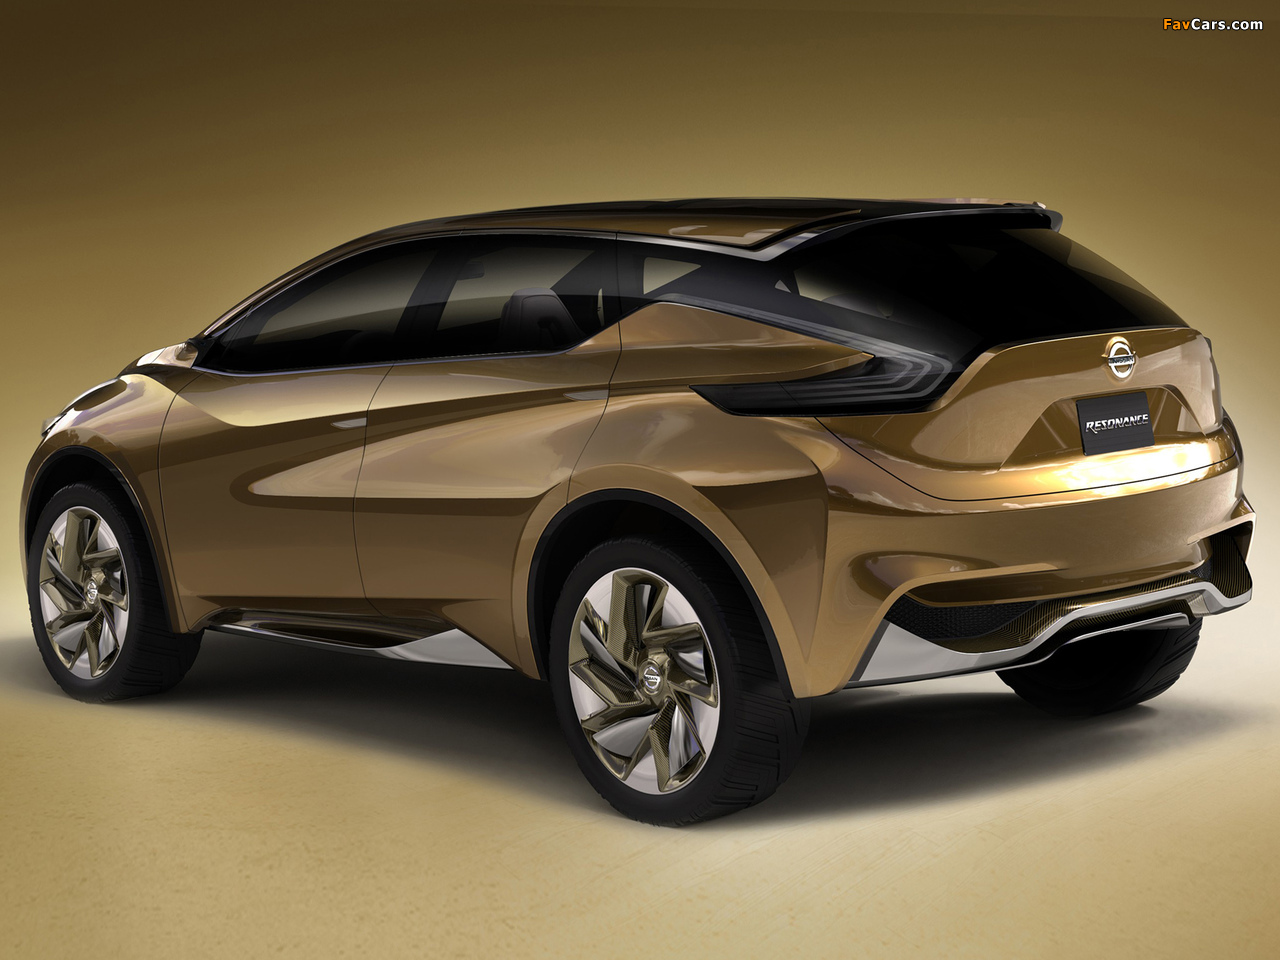 Nissan Resonance Concept 2013 wallpapers (1280 x 960)